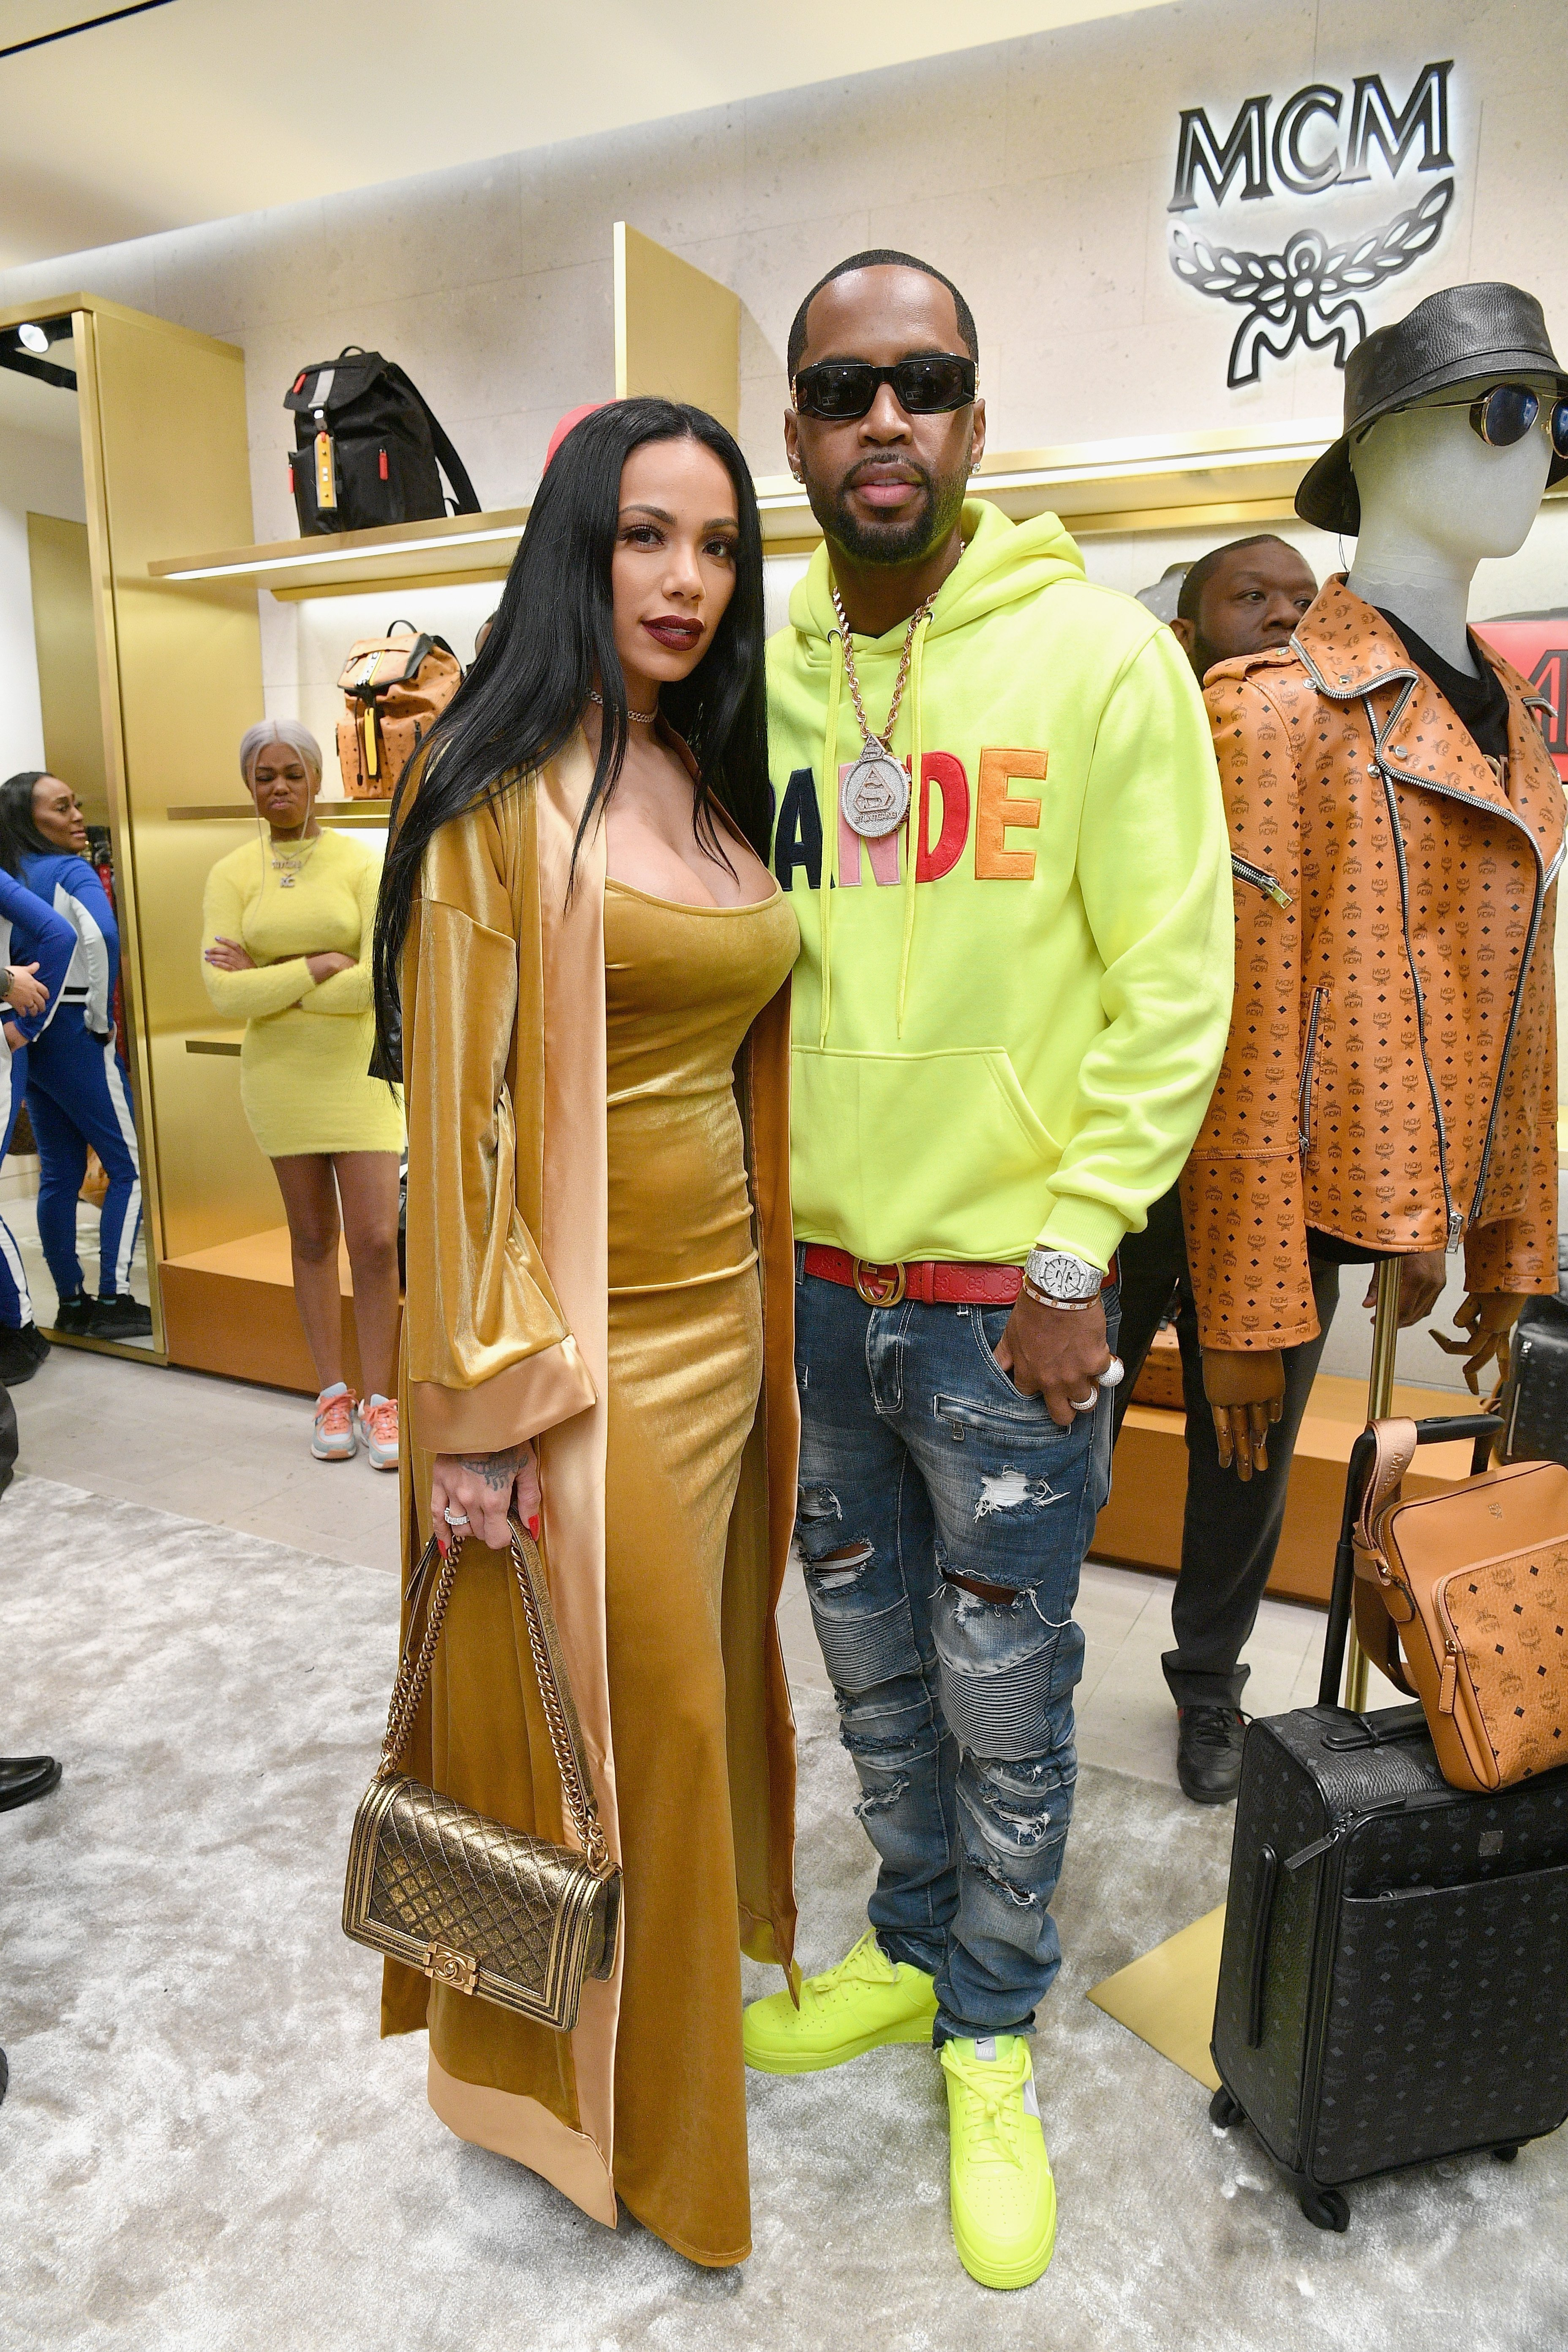 Newlyweds Erica Mena and Safaree Samuels at the MCM x Super Bowl LIII in February 2019 in Atlanta. | Photo: Getty Images